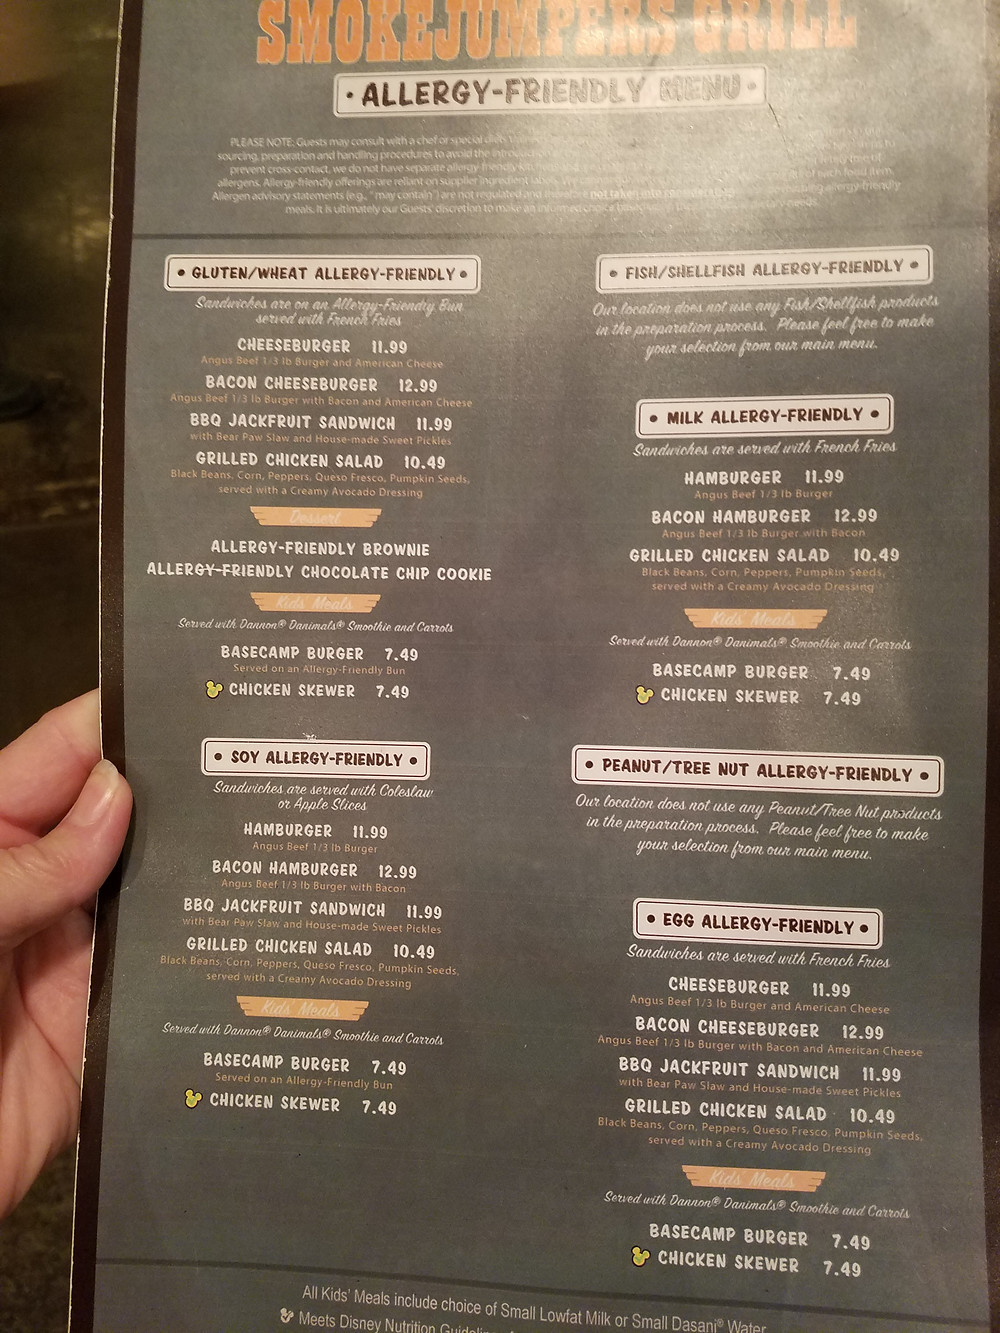 SmokeJumpers Grill Allergy-friendly menu